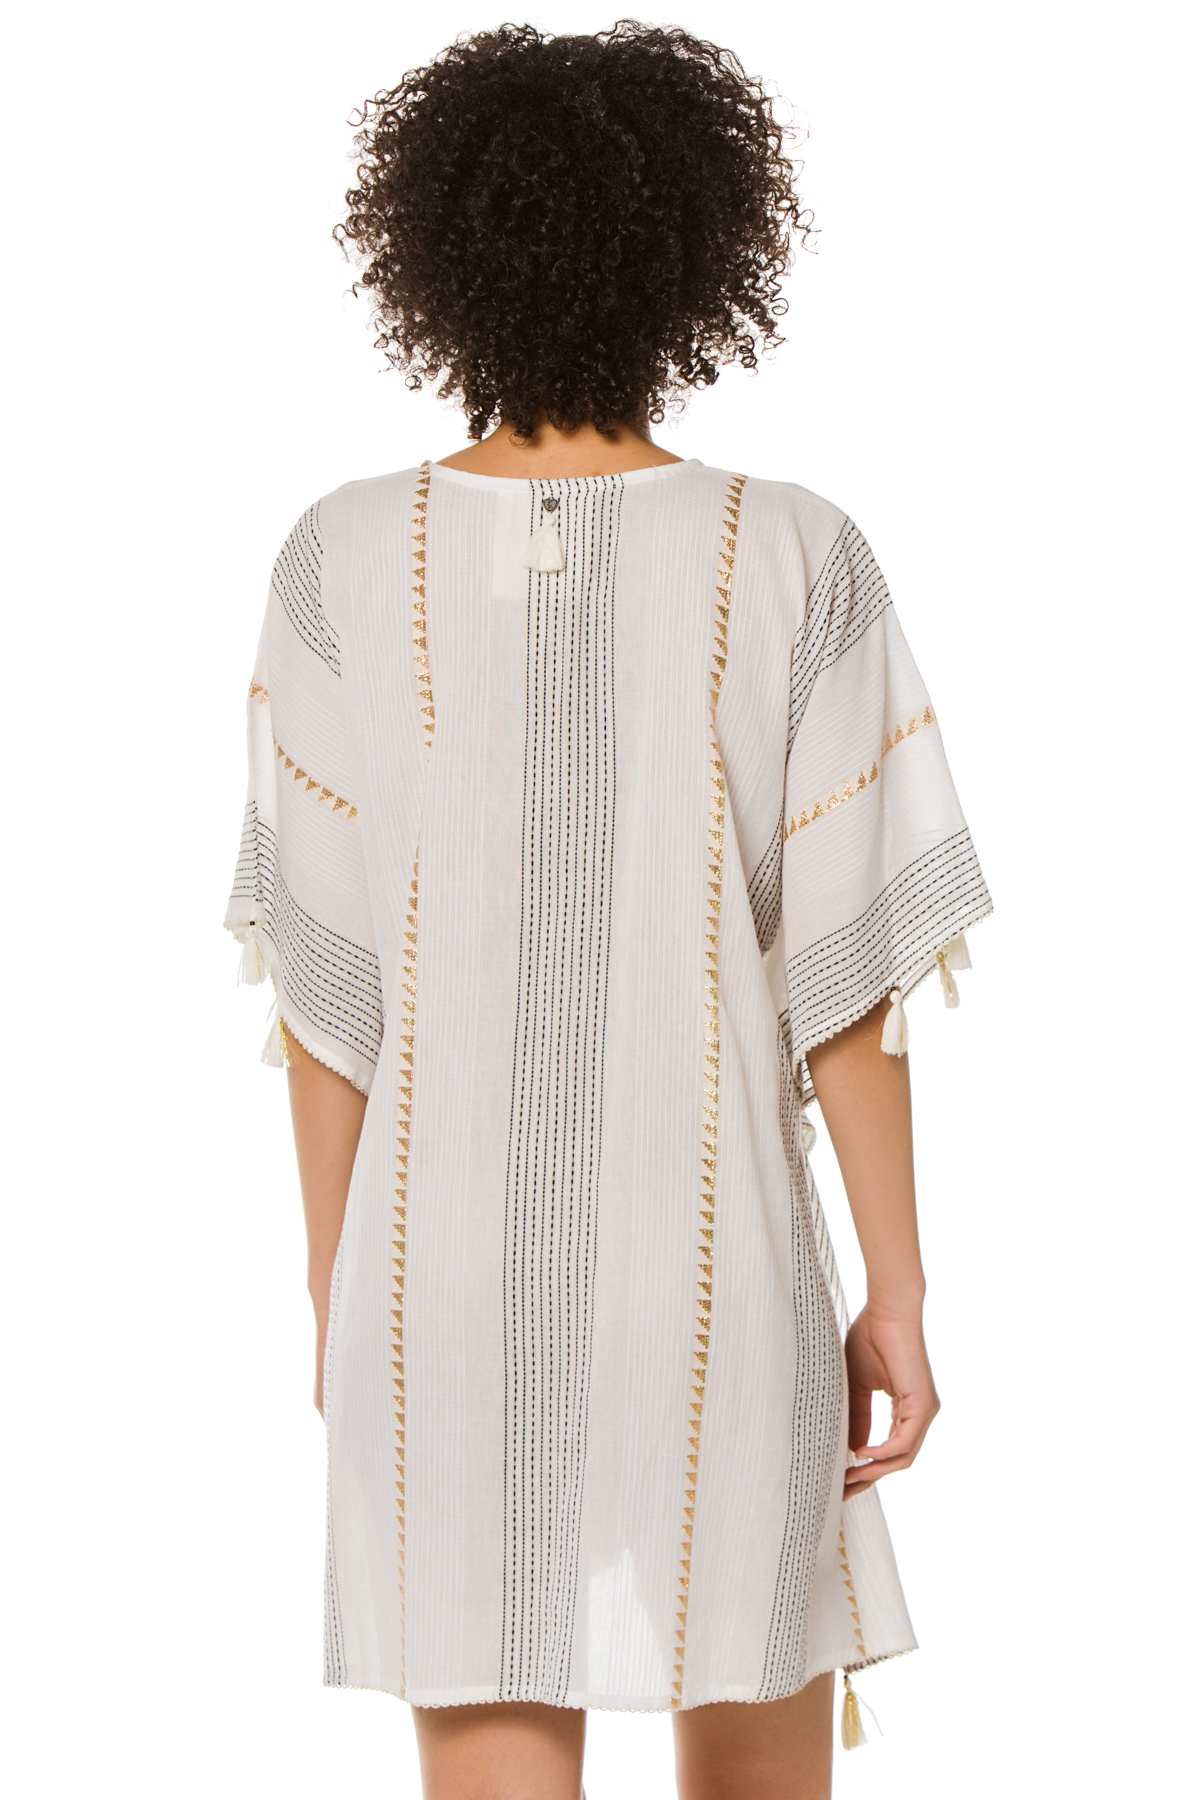 Stripe Tunic - White Stripe 2